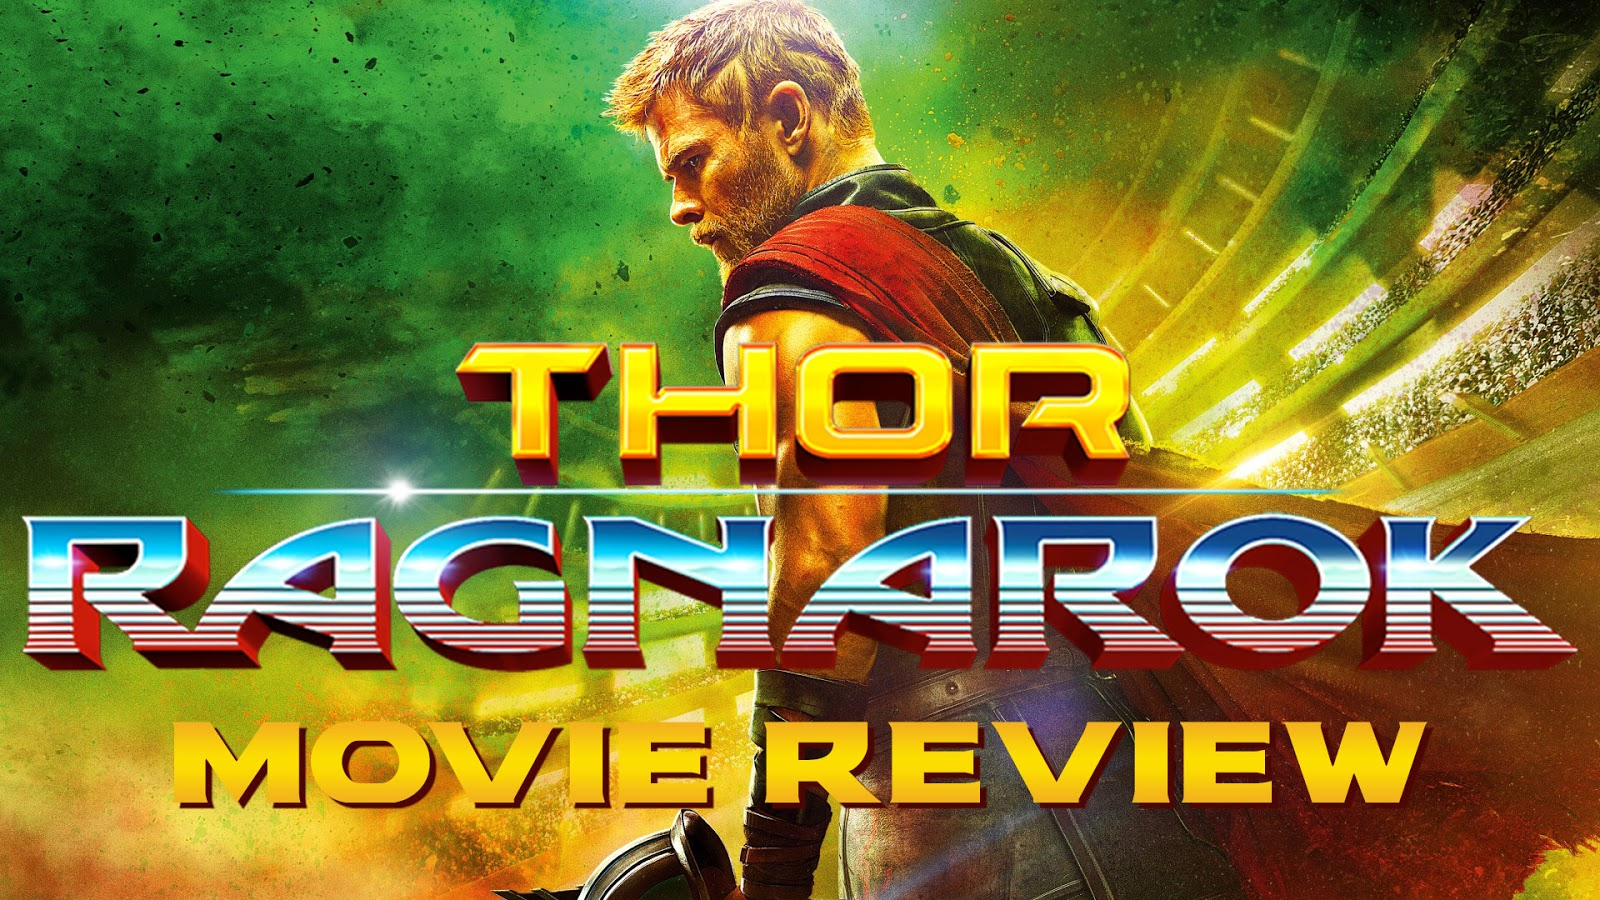 movie review THOR: RAGNAROK podcast